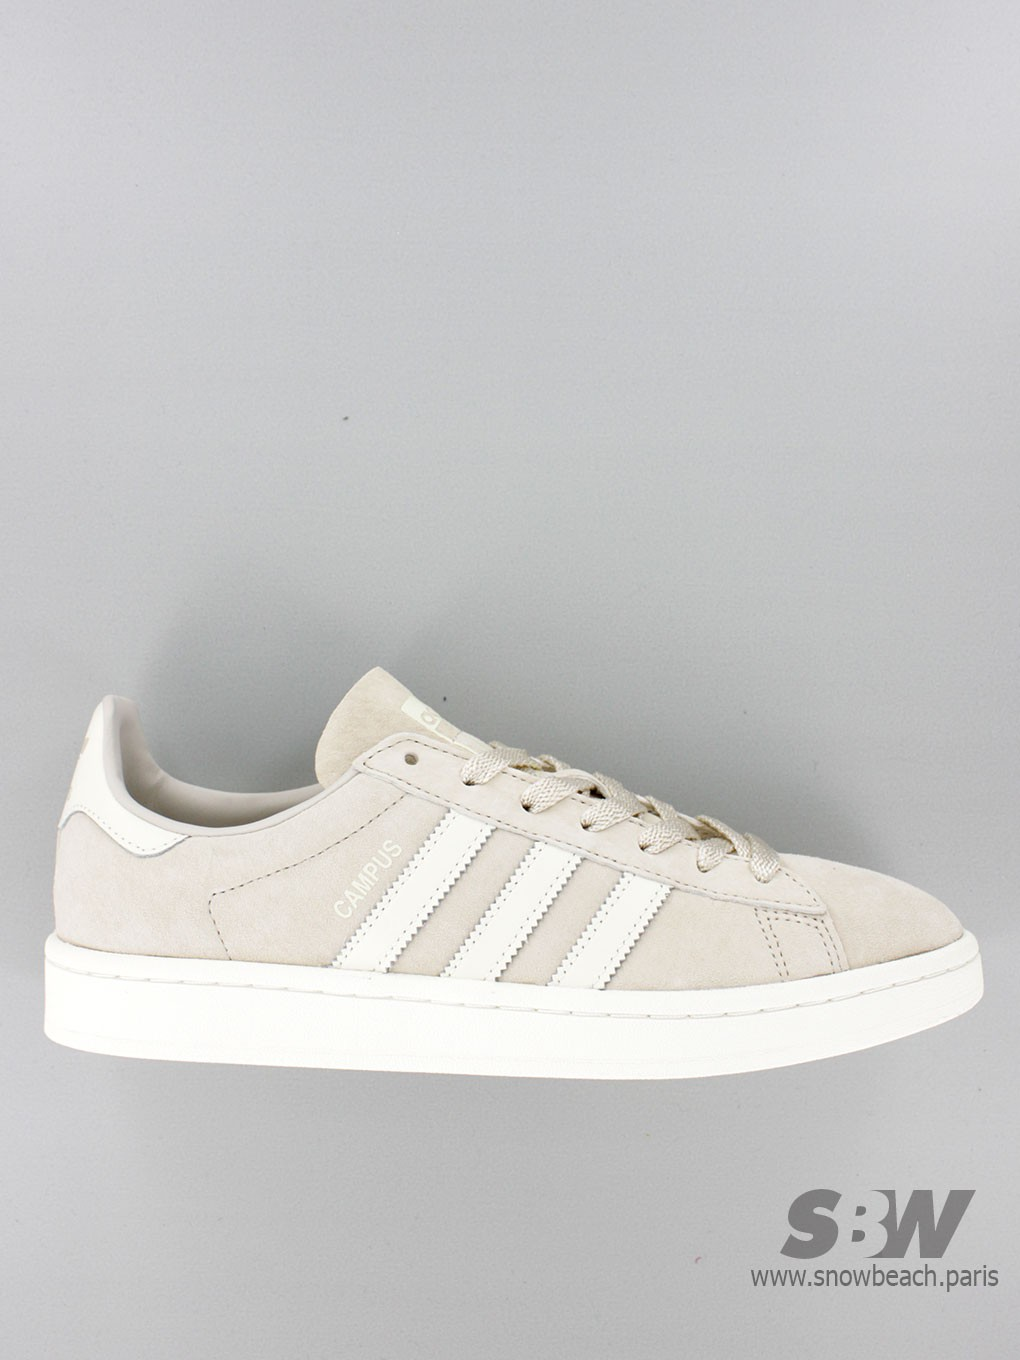 official shop detailed images good quality ADIDAS SKATEBOARDING CAMPUS core brown offwhite core white